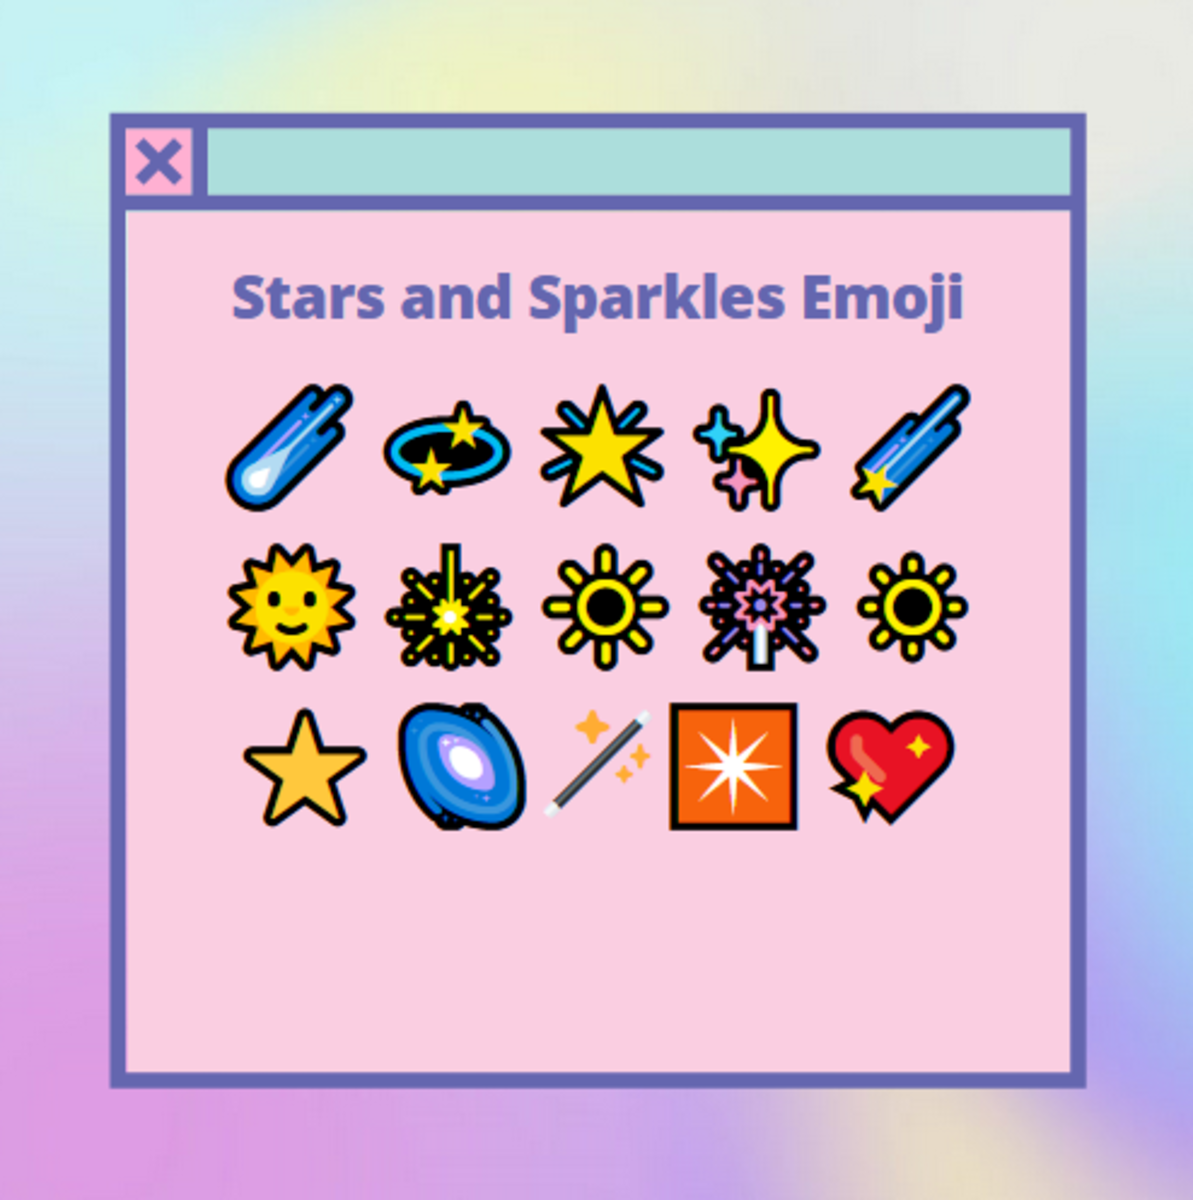 Here are some pretty emoji examples of stars and sparkles!